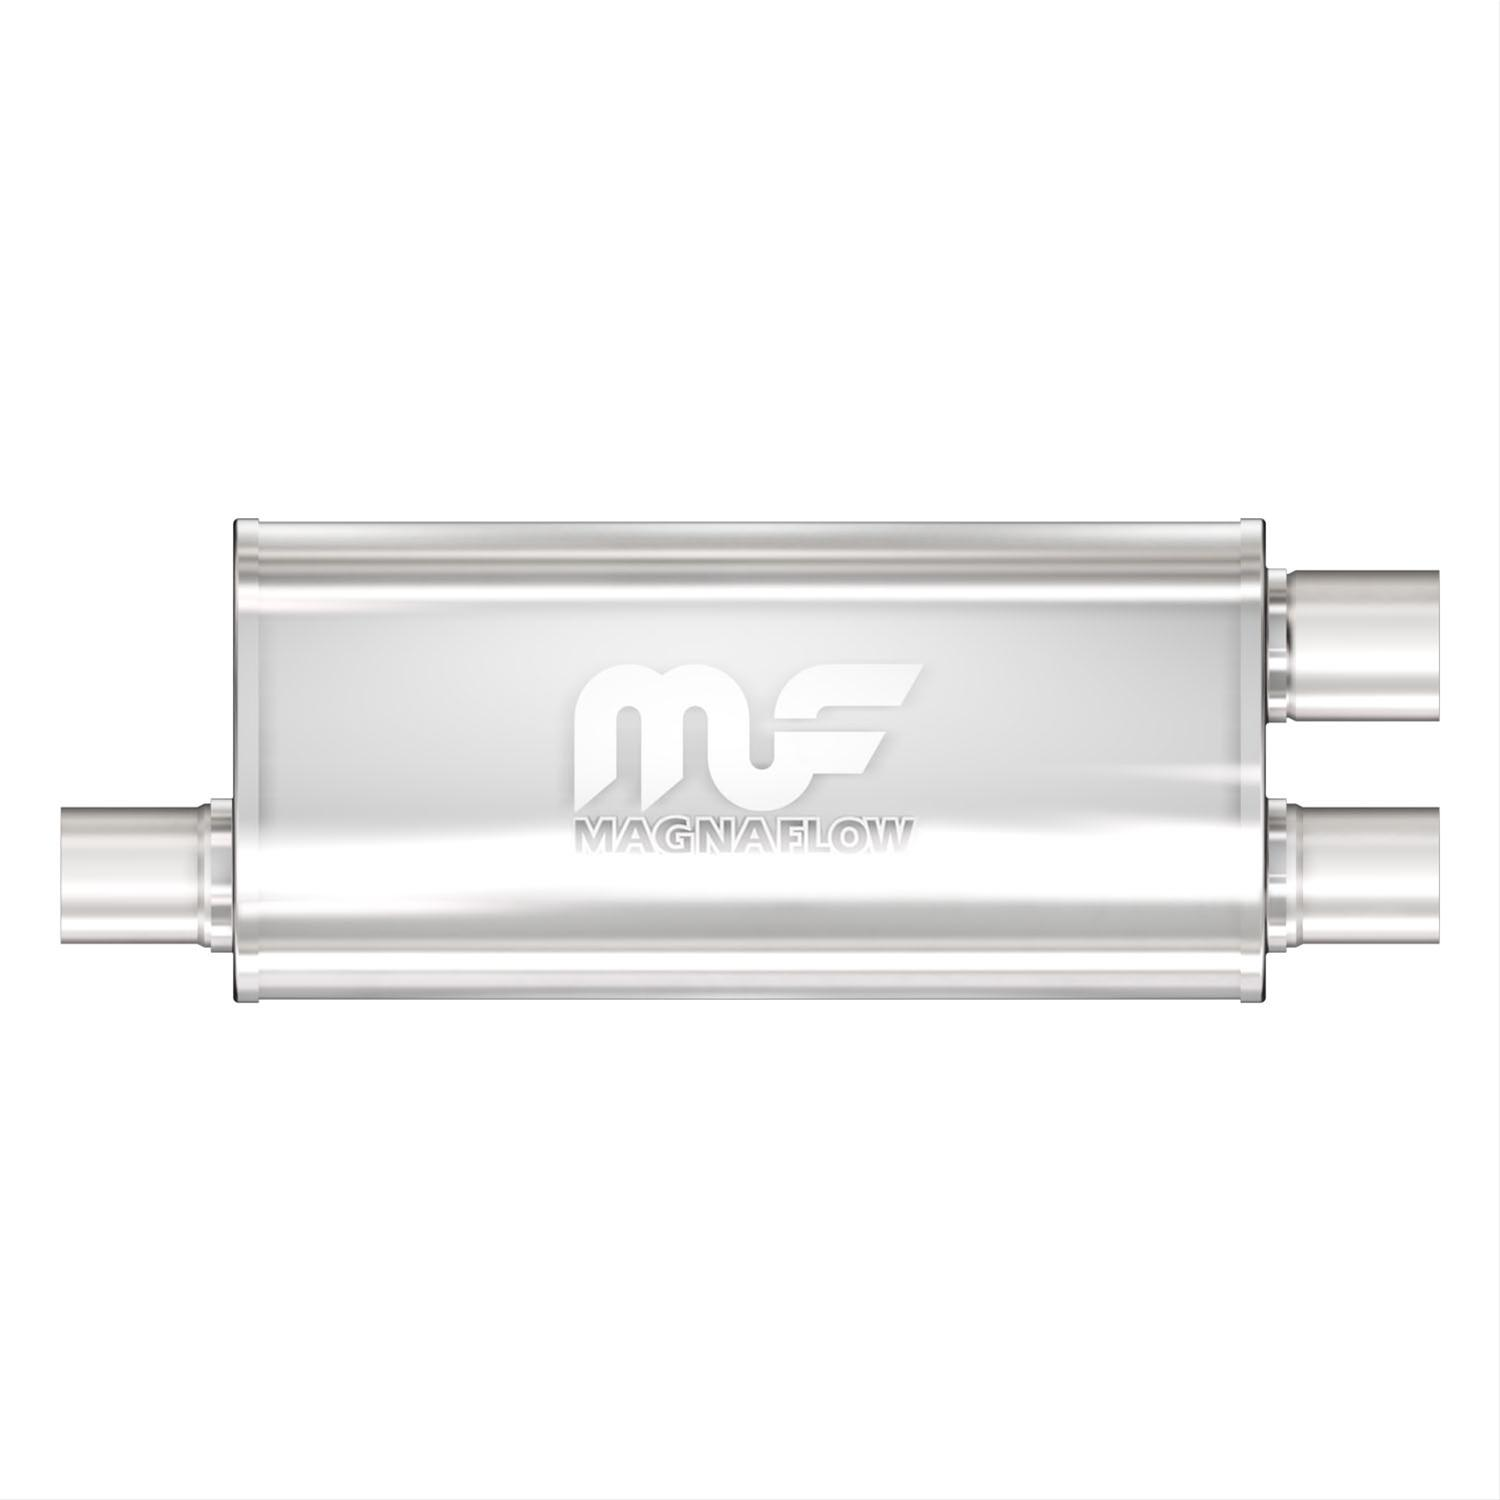 Magnaflow Performance Exhaust 12256 Stainless Steel Muffler